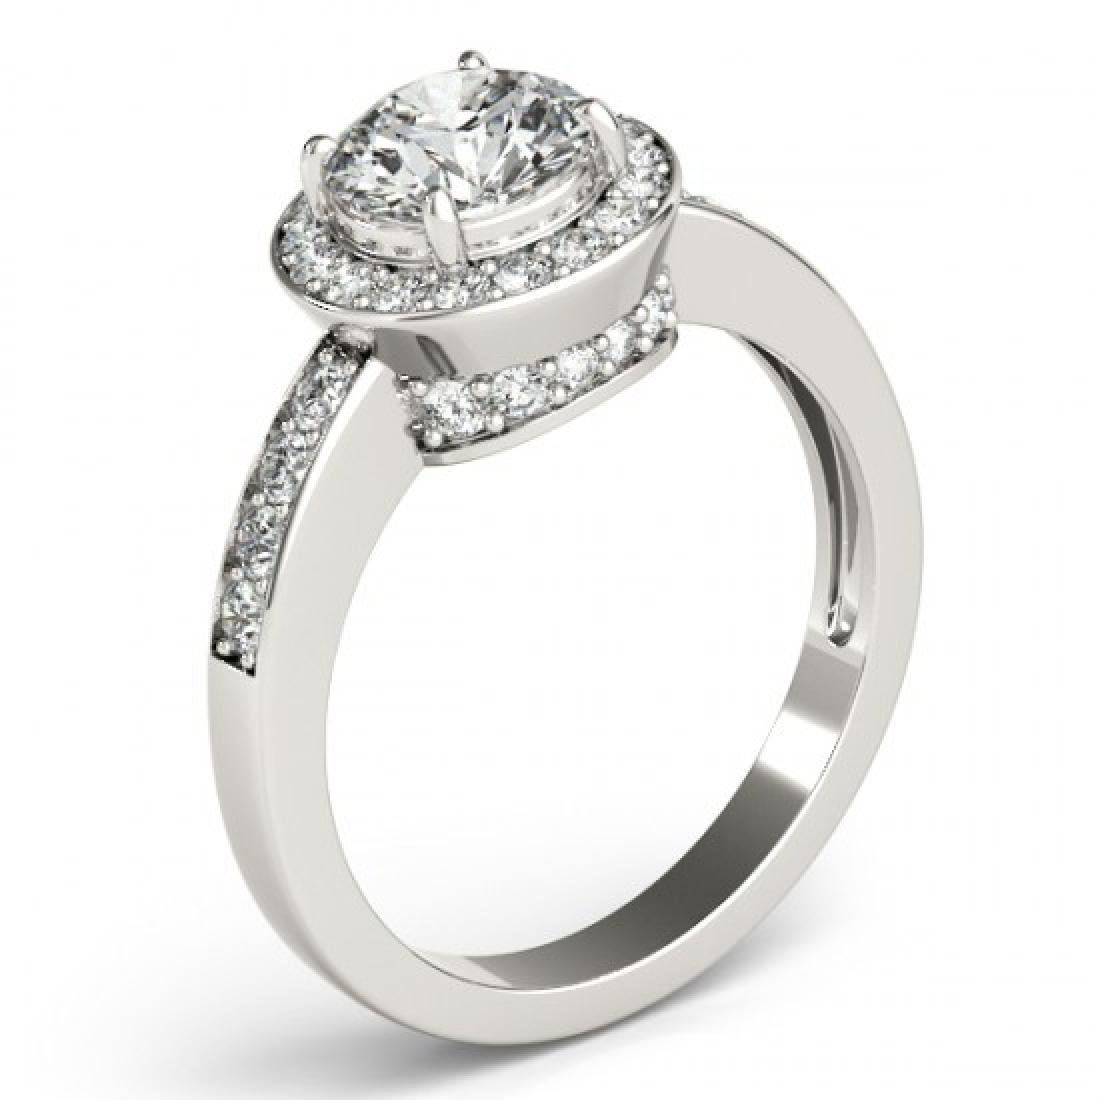 1.2 CTW Certified VS/SI Diamond Solitaire Halo Ring 14K - 3